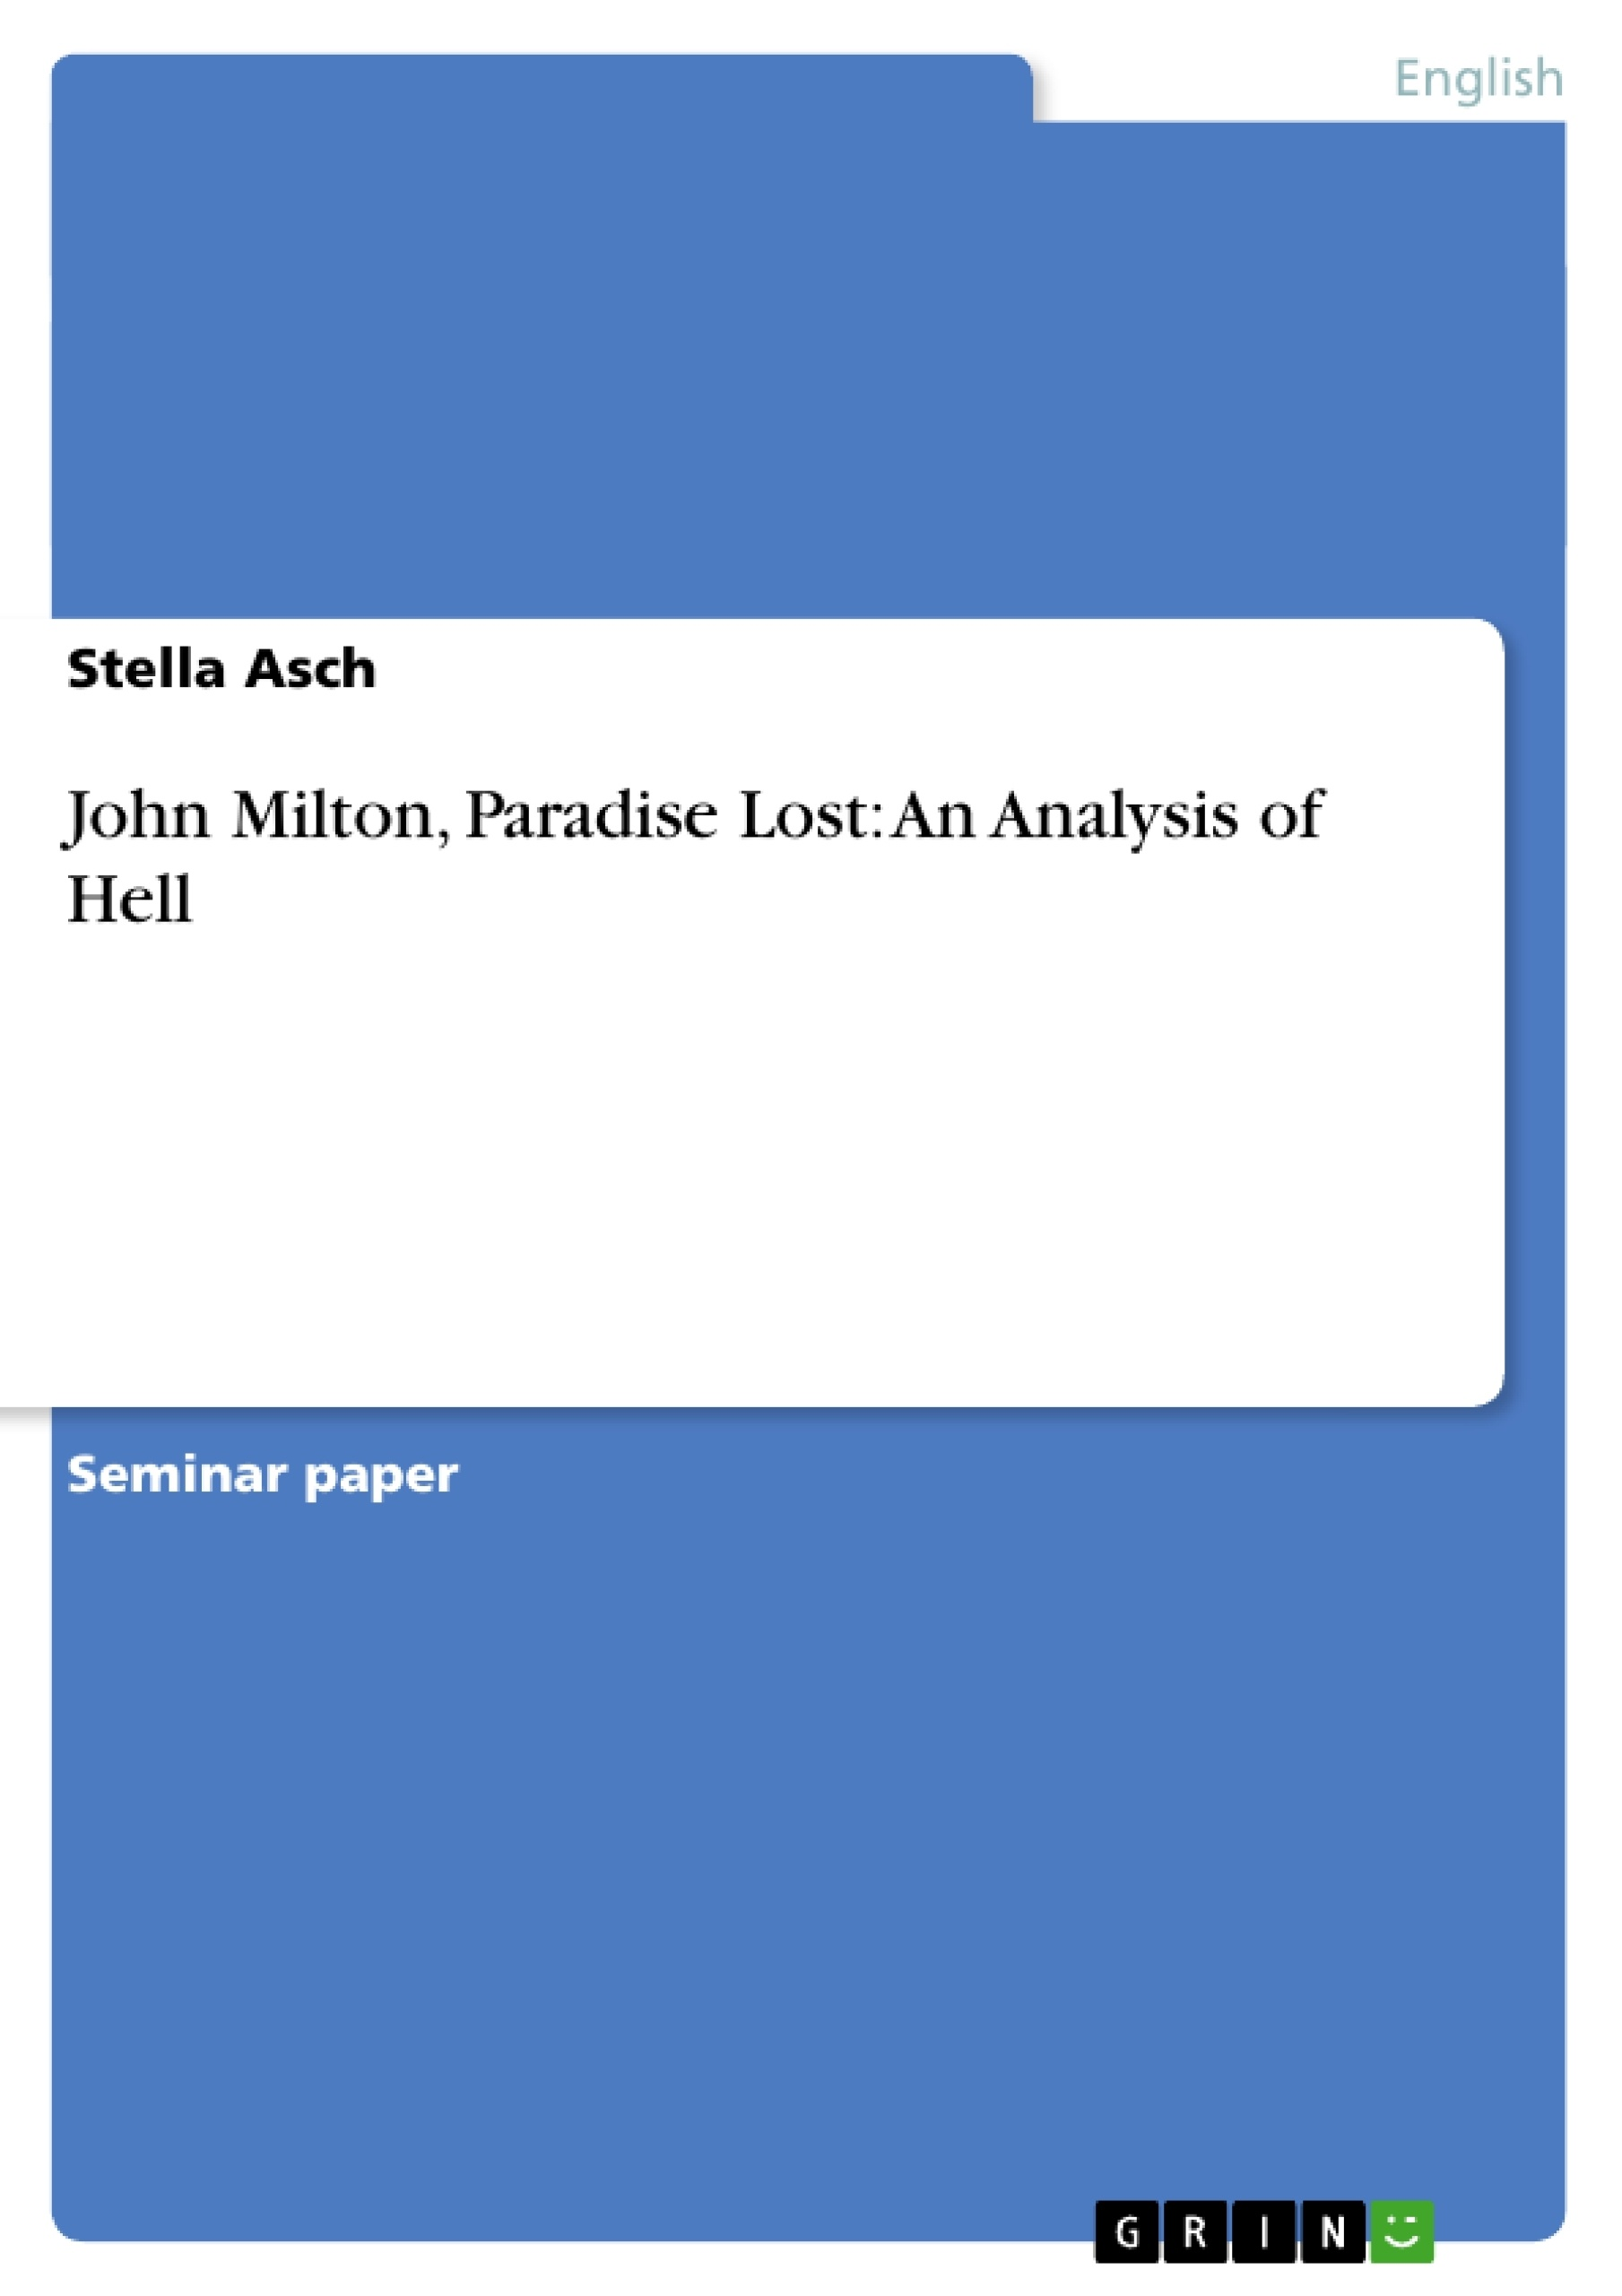 john milton paradise lost an analysis of hell publish your upload your own papers earn money and win an iphone 7